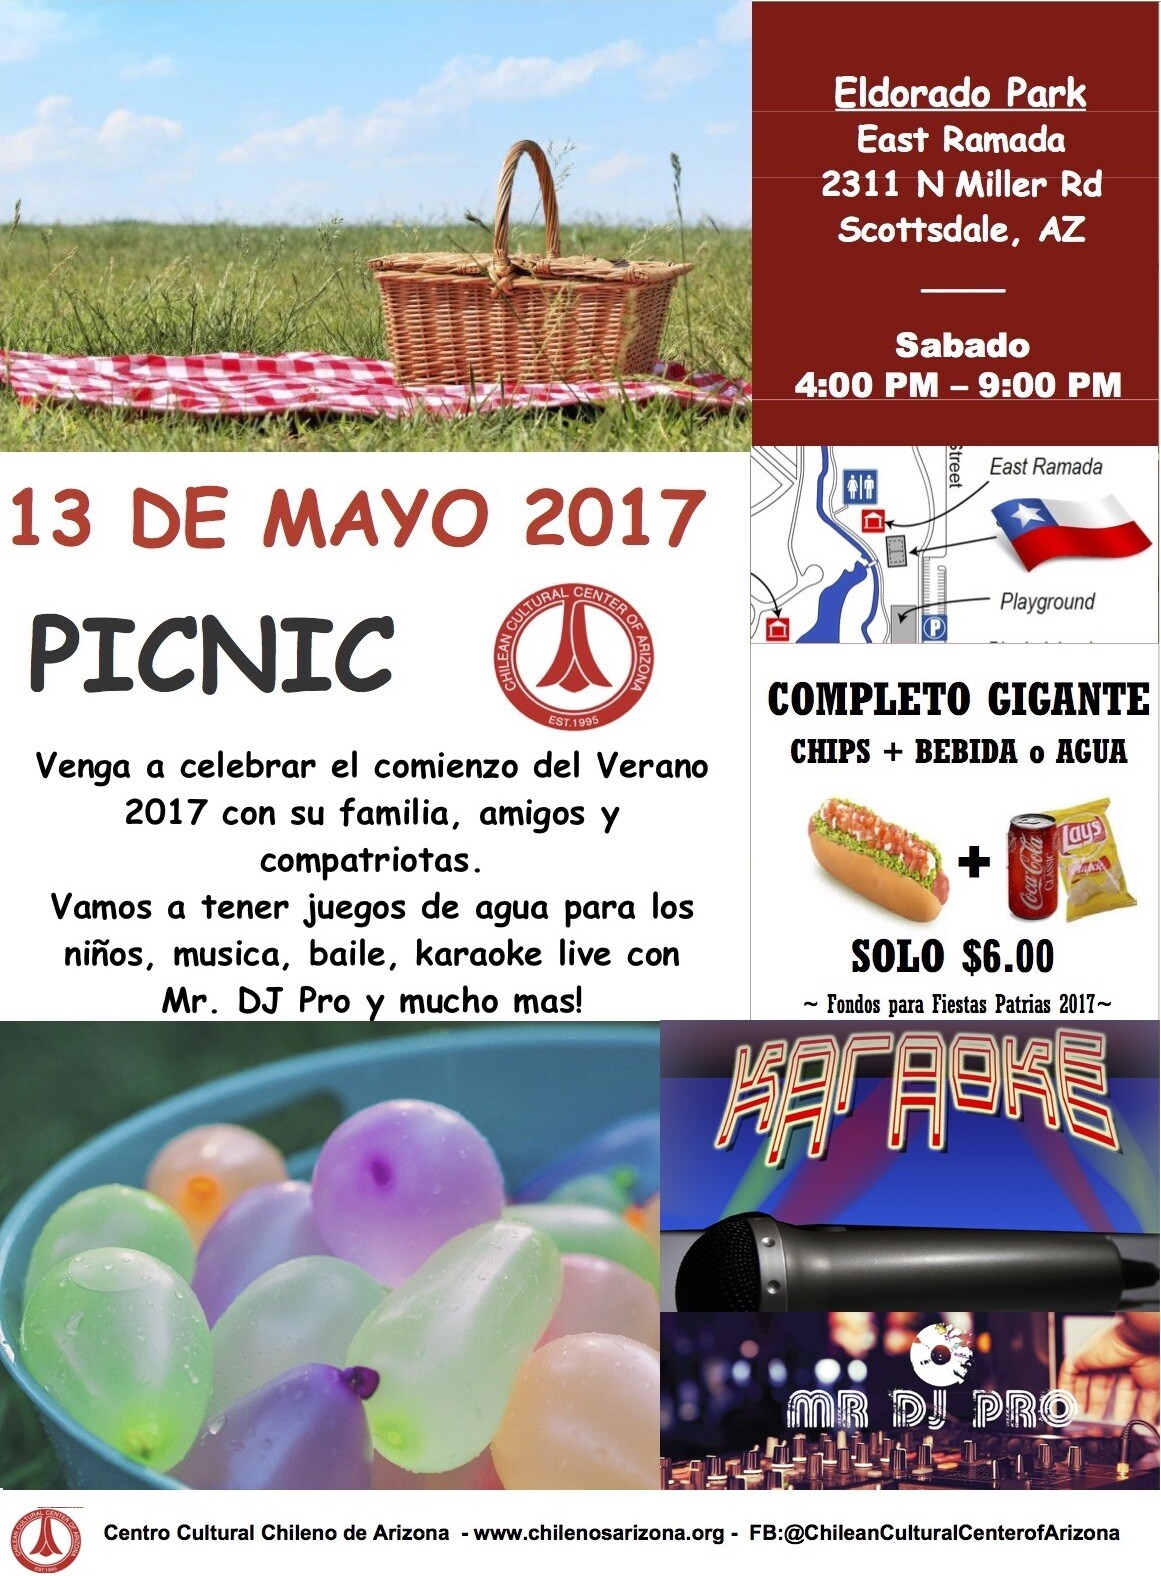 Picnic Flyer - Corrected Version JPEG